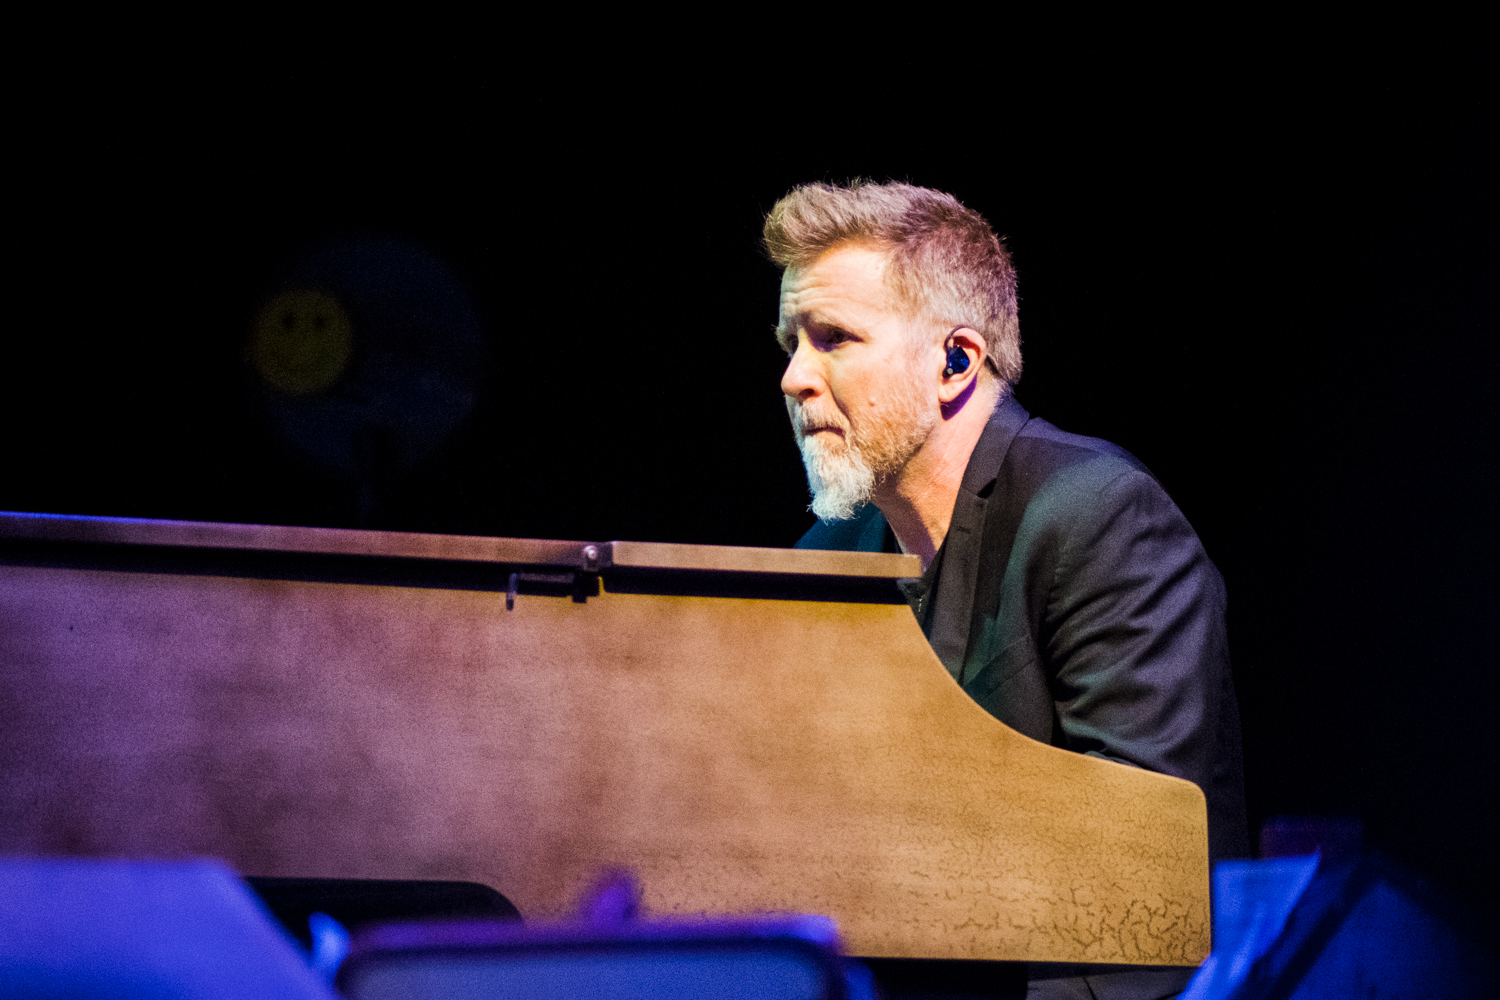 Pianist from Alison Krauss plays at the Peabody Opera House. Photo by Ryan Ledesma.